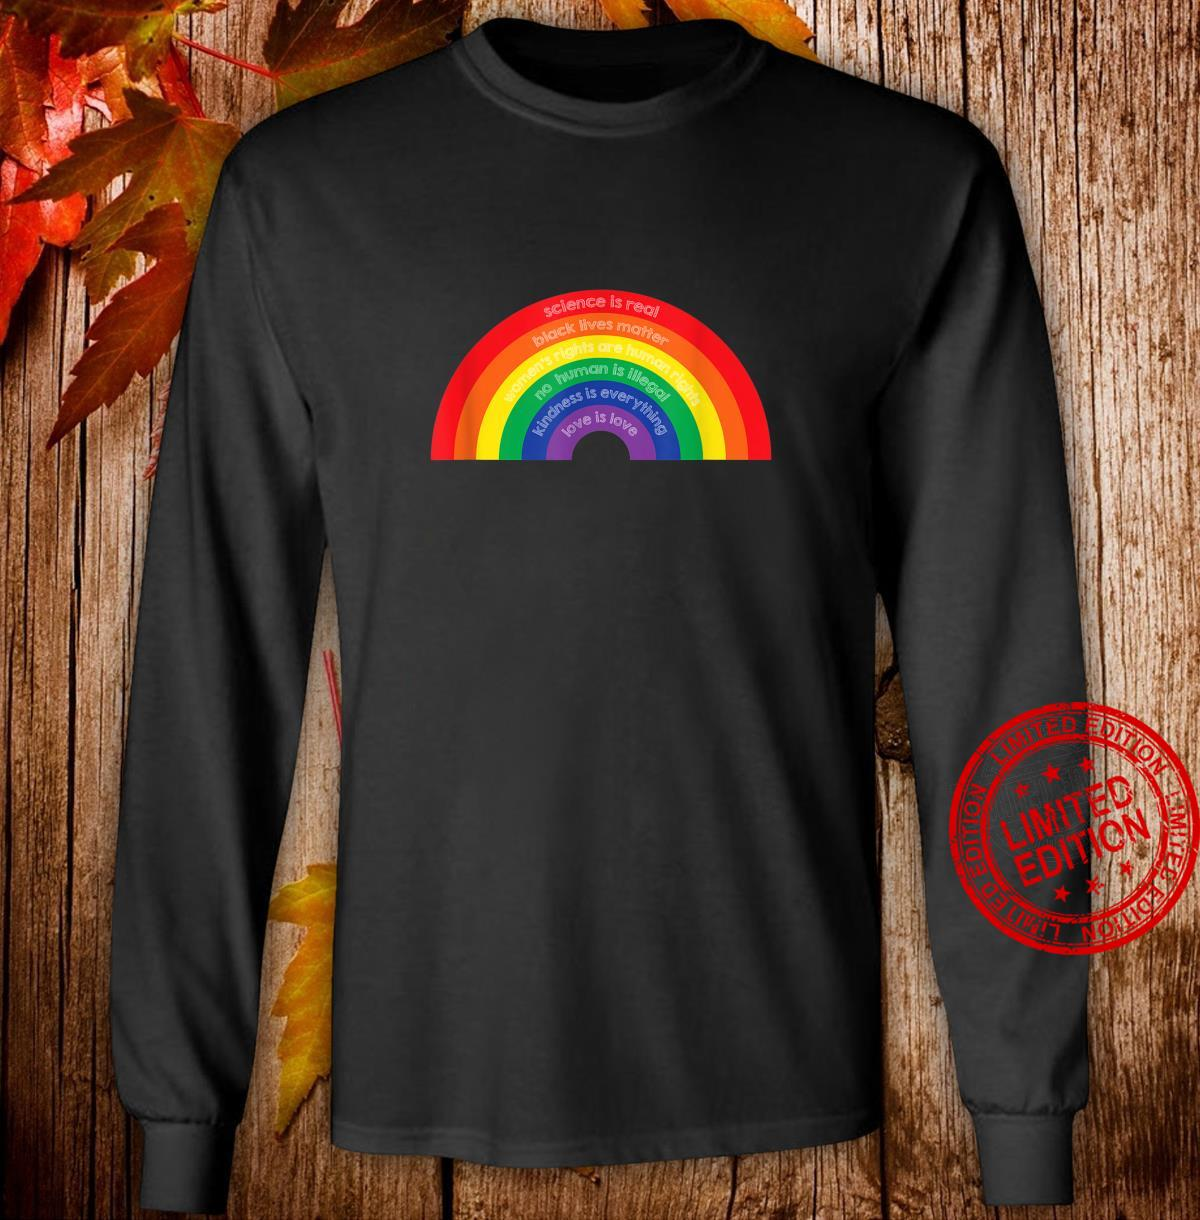 Believe in Science, Kindness & Human Rights Shirt long sleeved